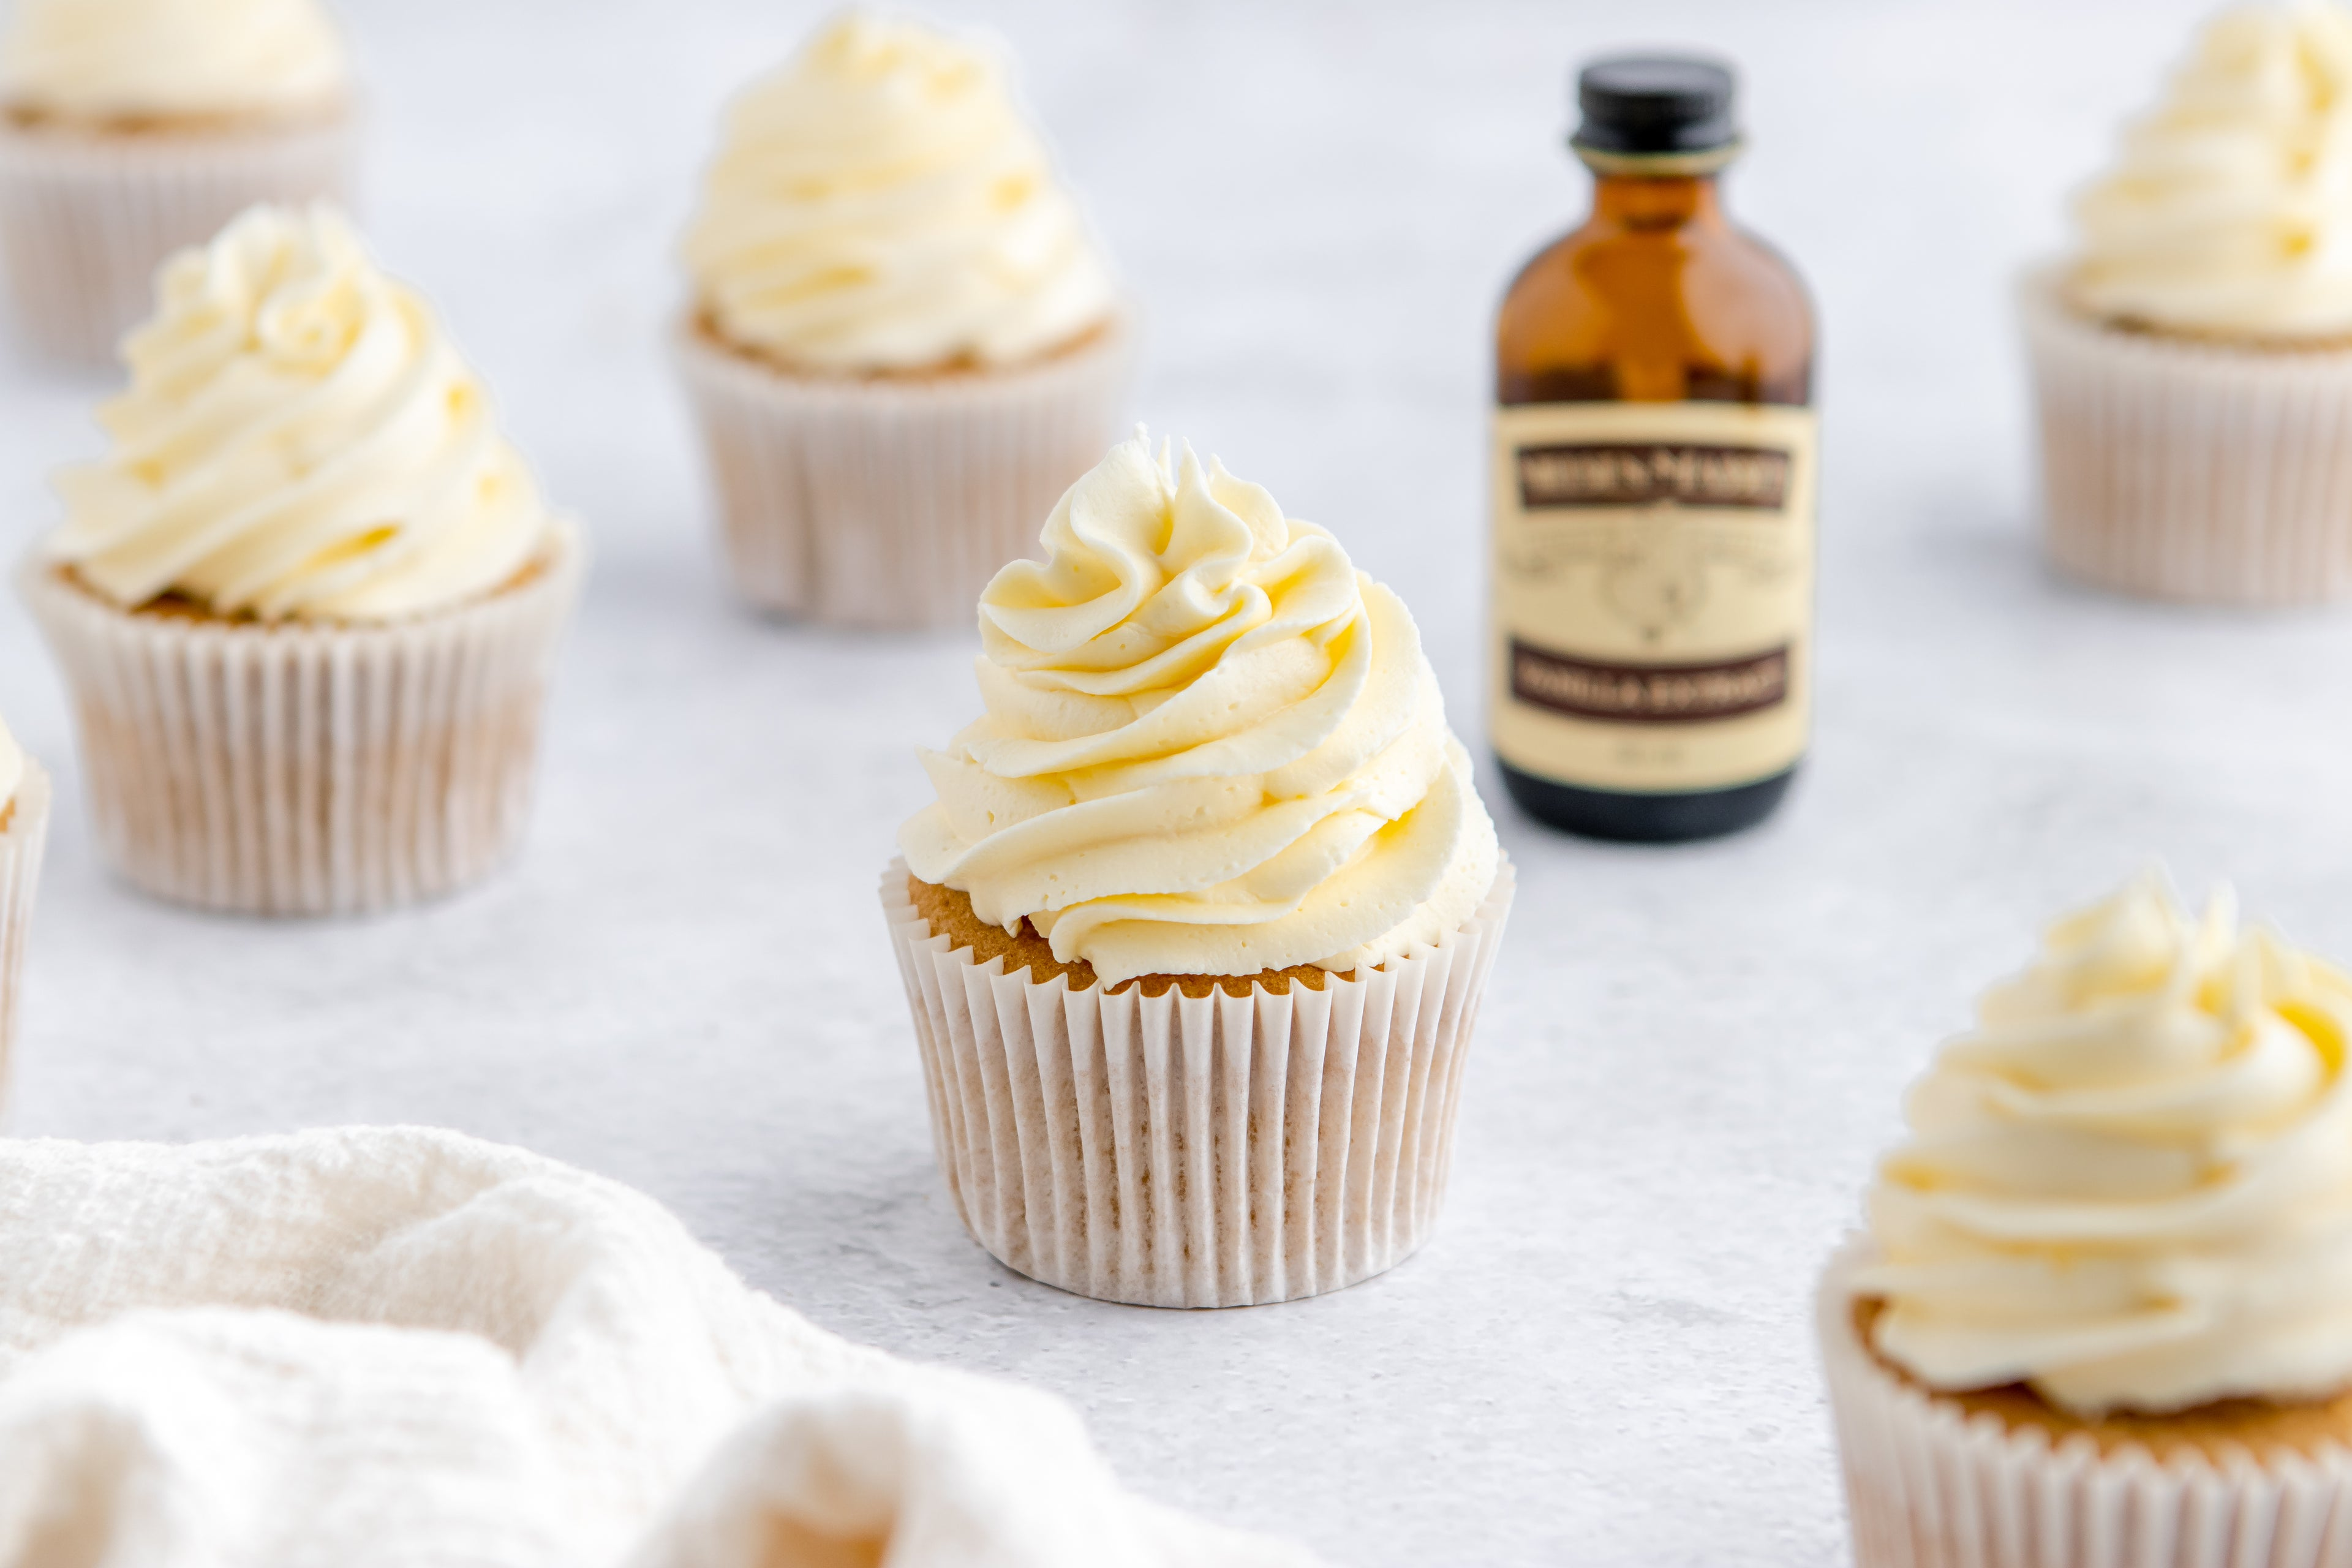 Close up of a Gluten Free Cupcake with a bottle of Neilsen-Massey vanilla extract in the background